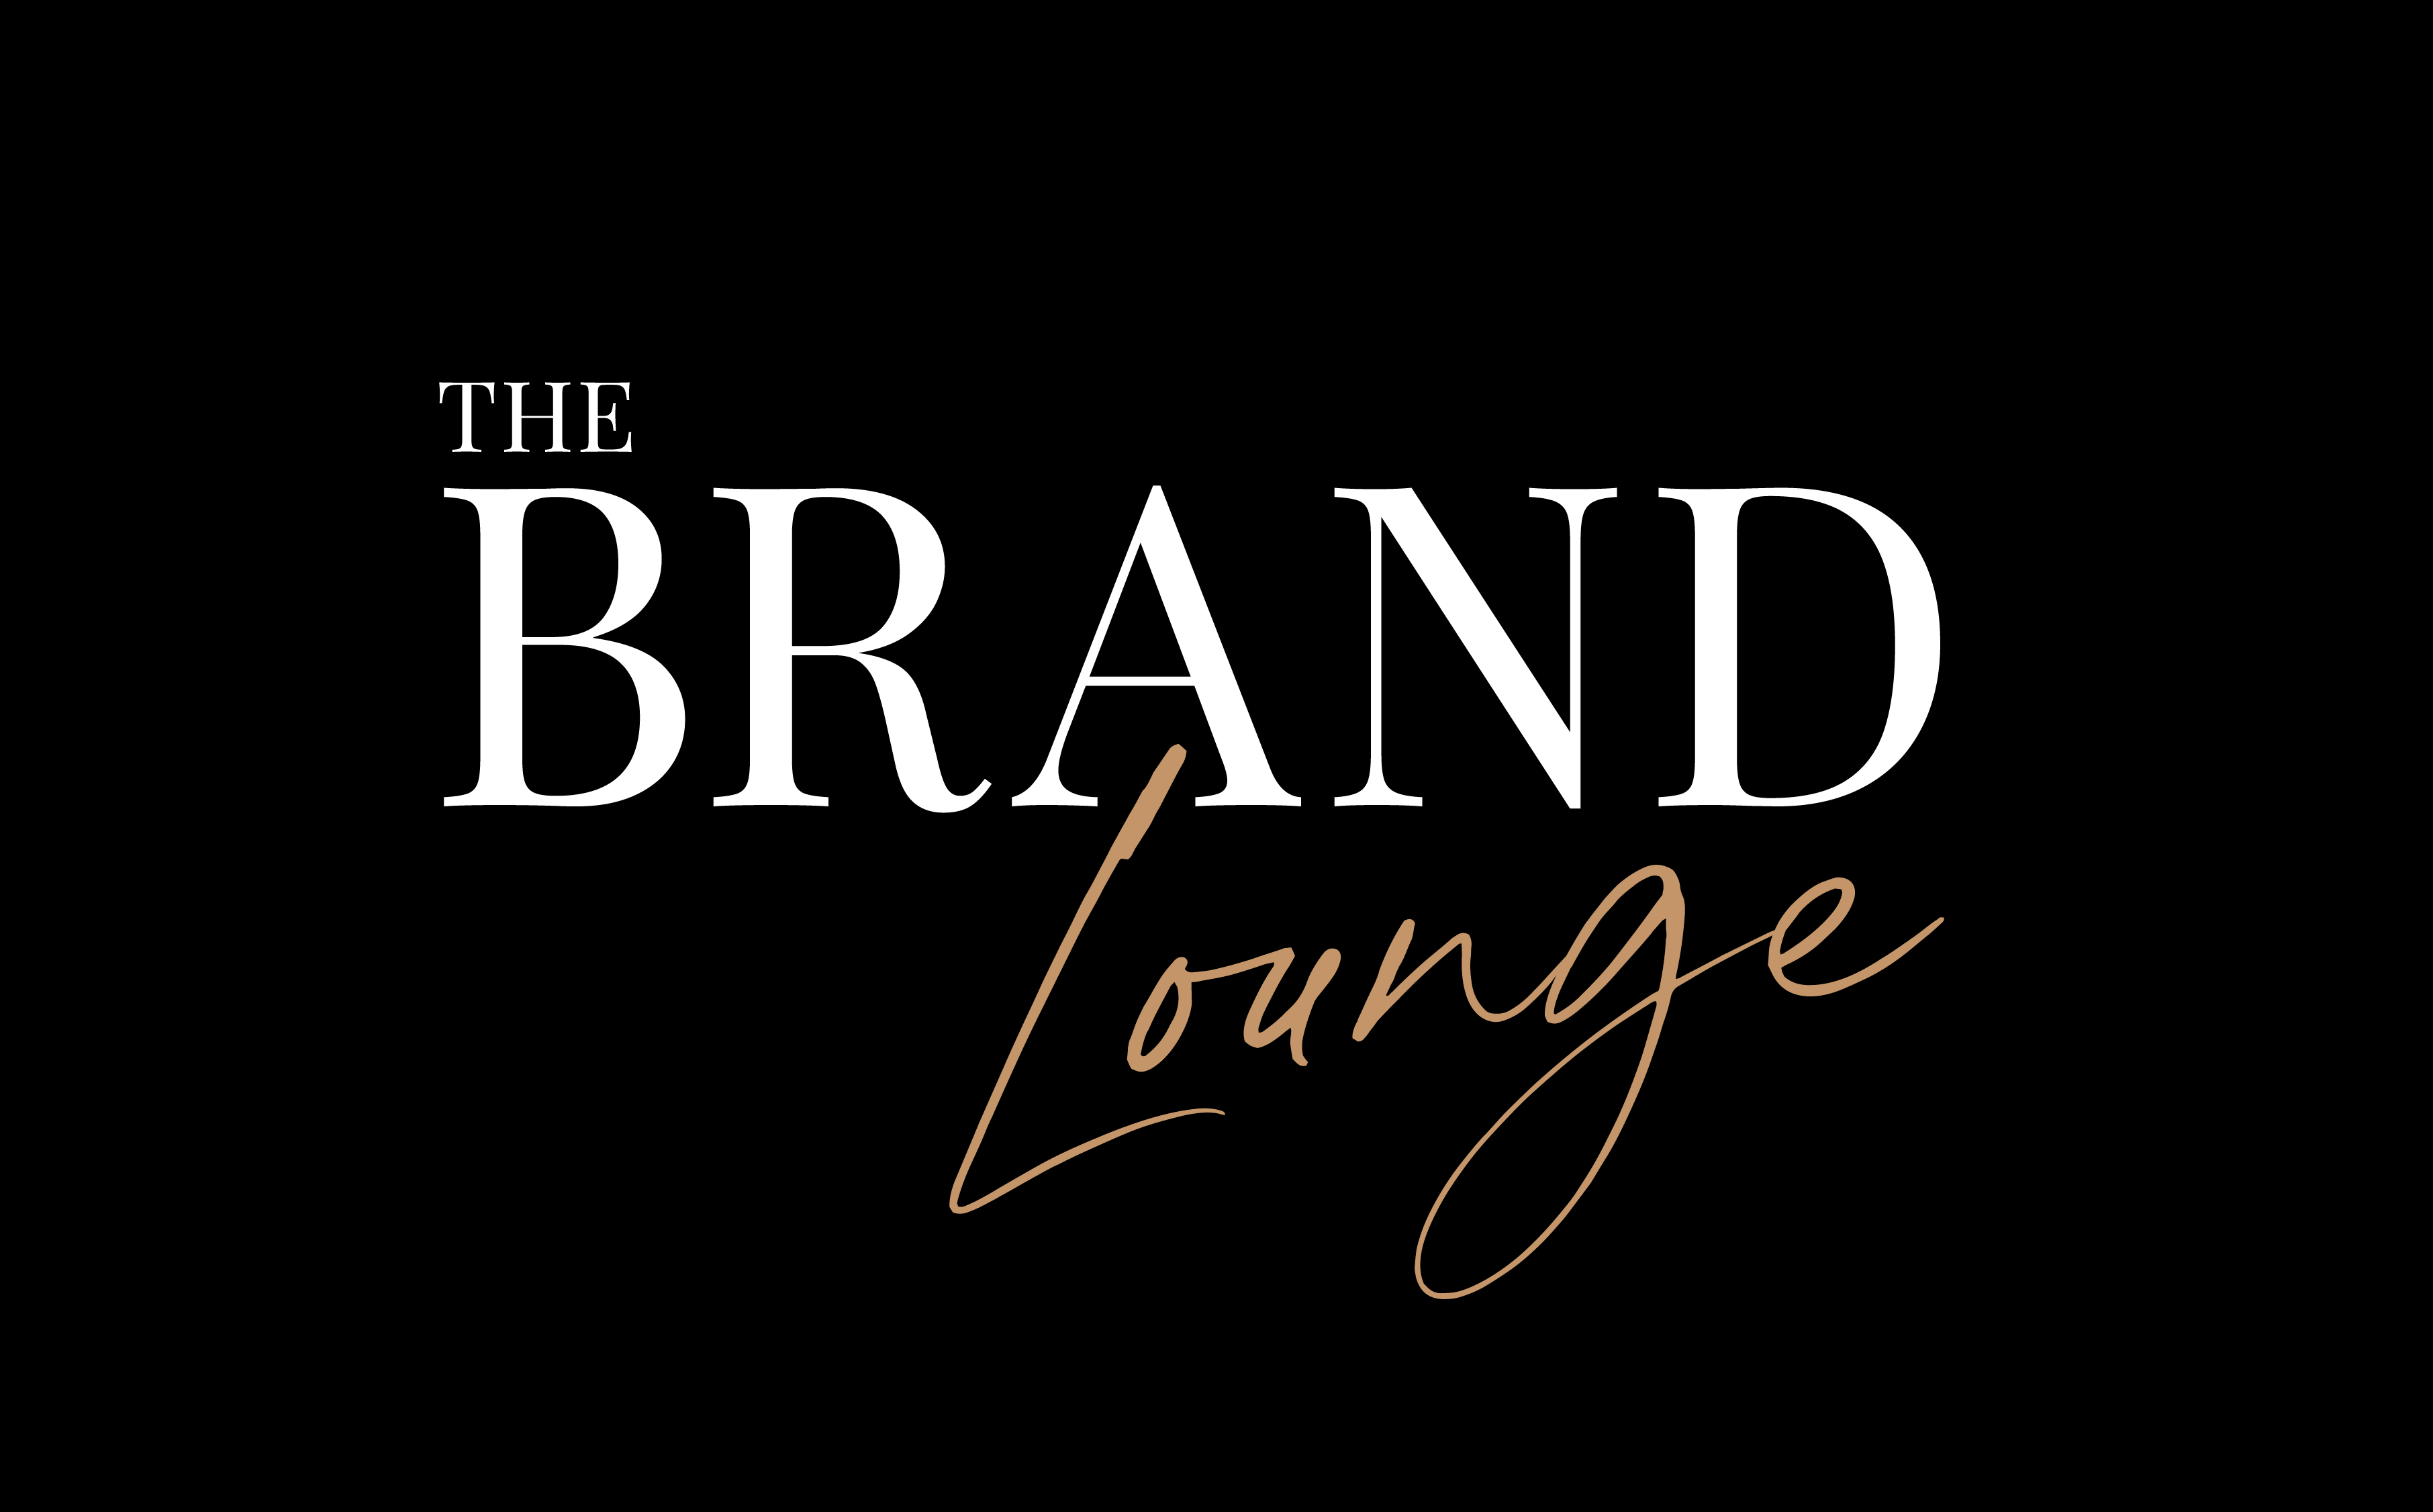 The Brand Lounge